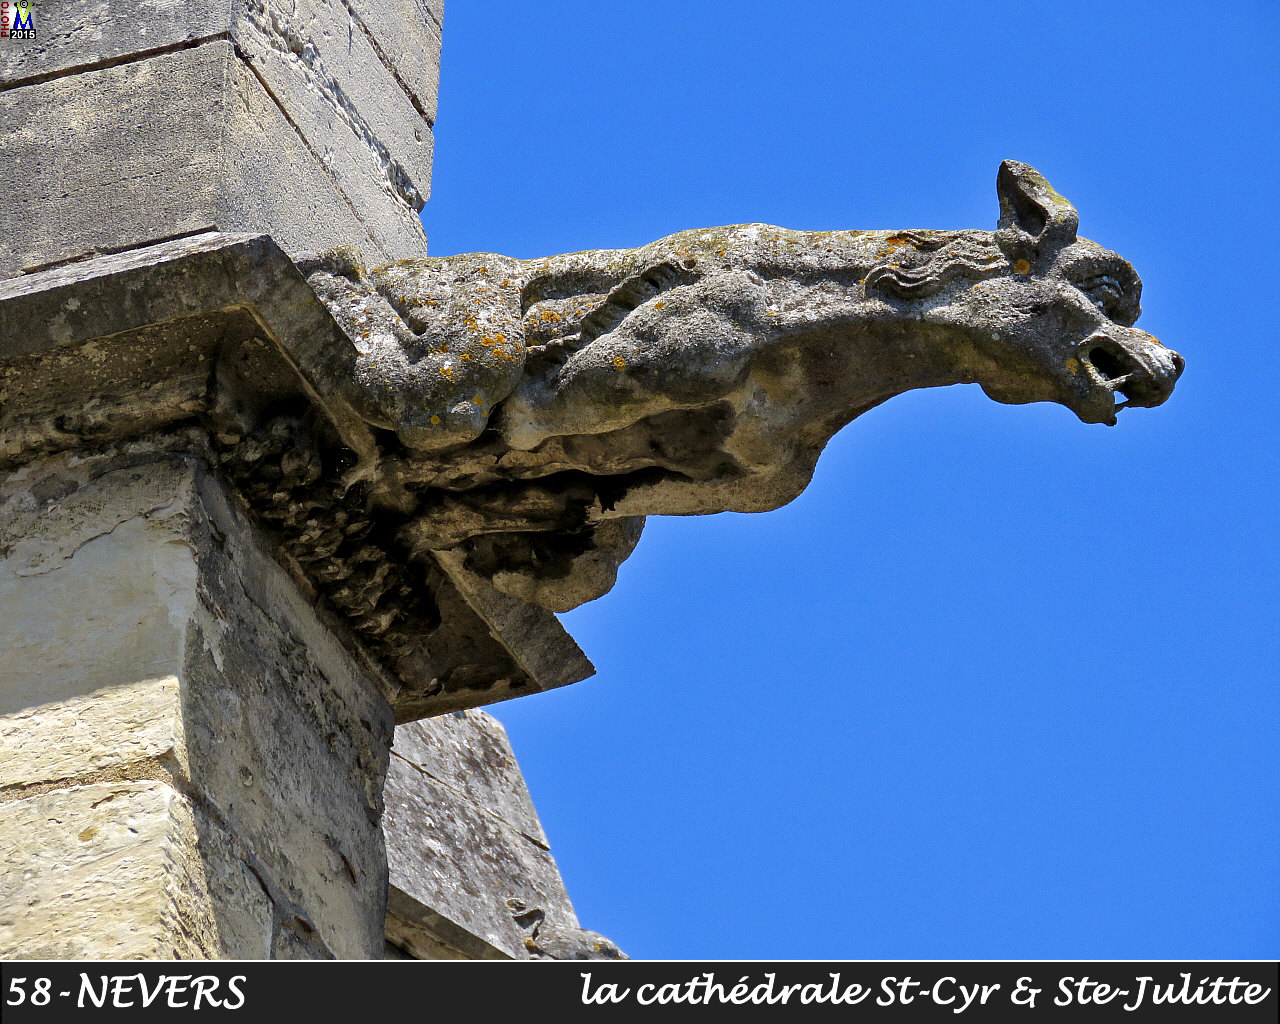 58NEVERS-cathedrale_130.jpg